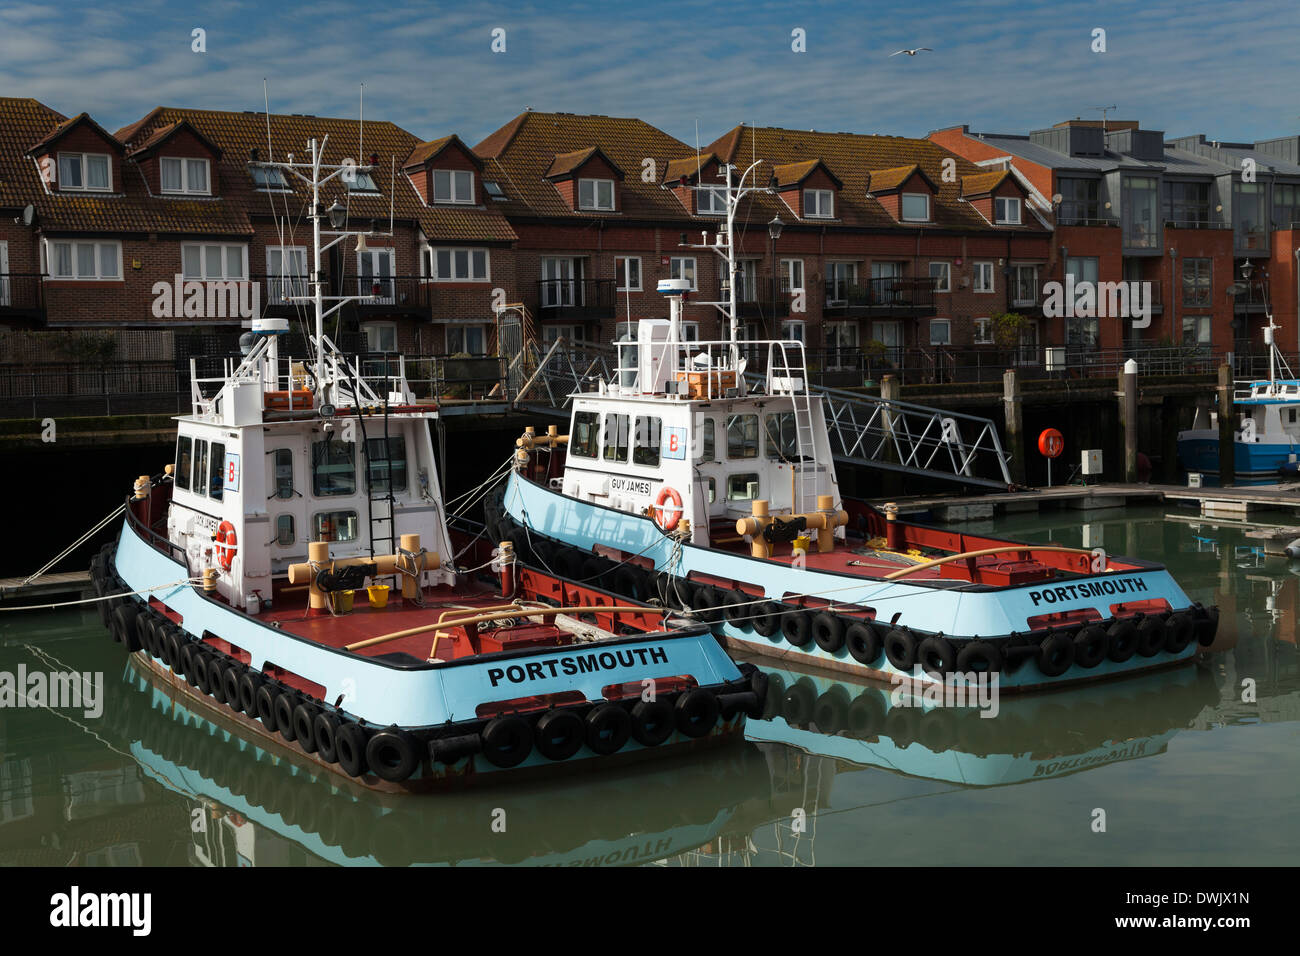 Two Portsmouth tug boats moored in the Harbour. - Stock Image